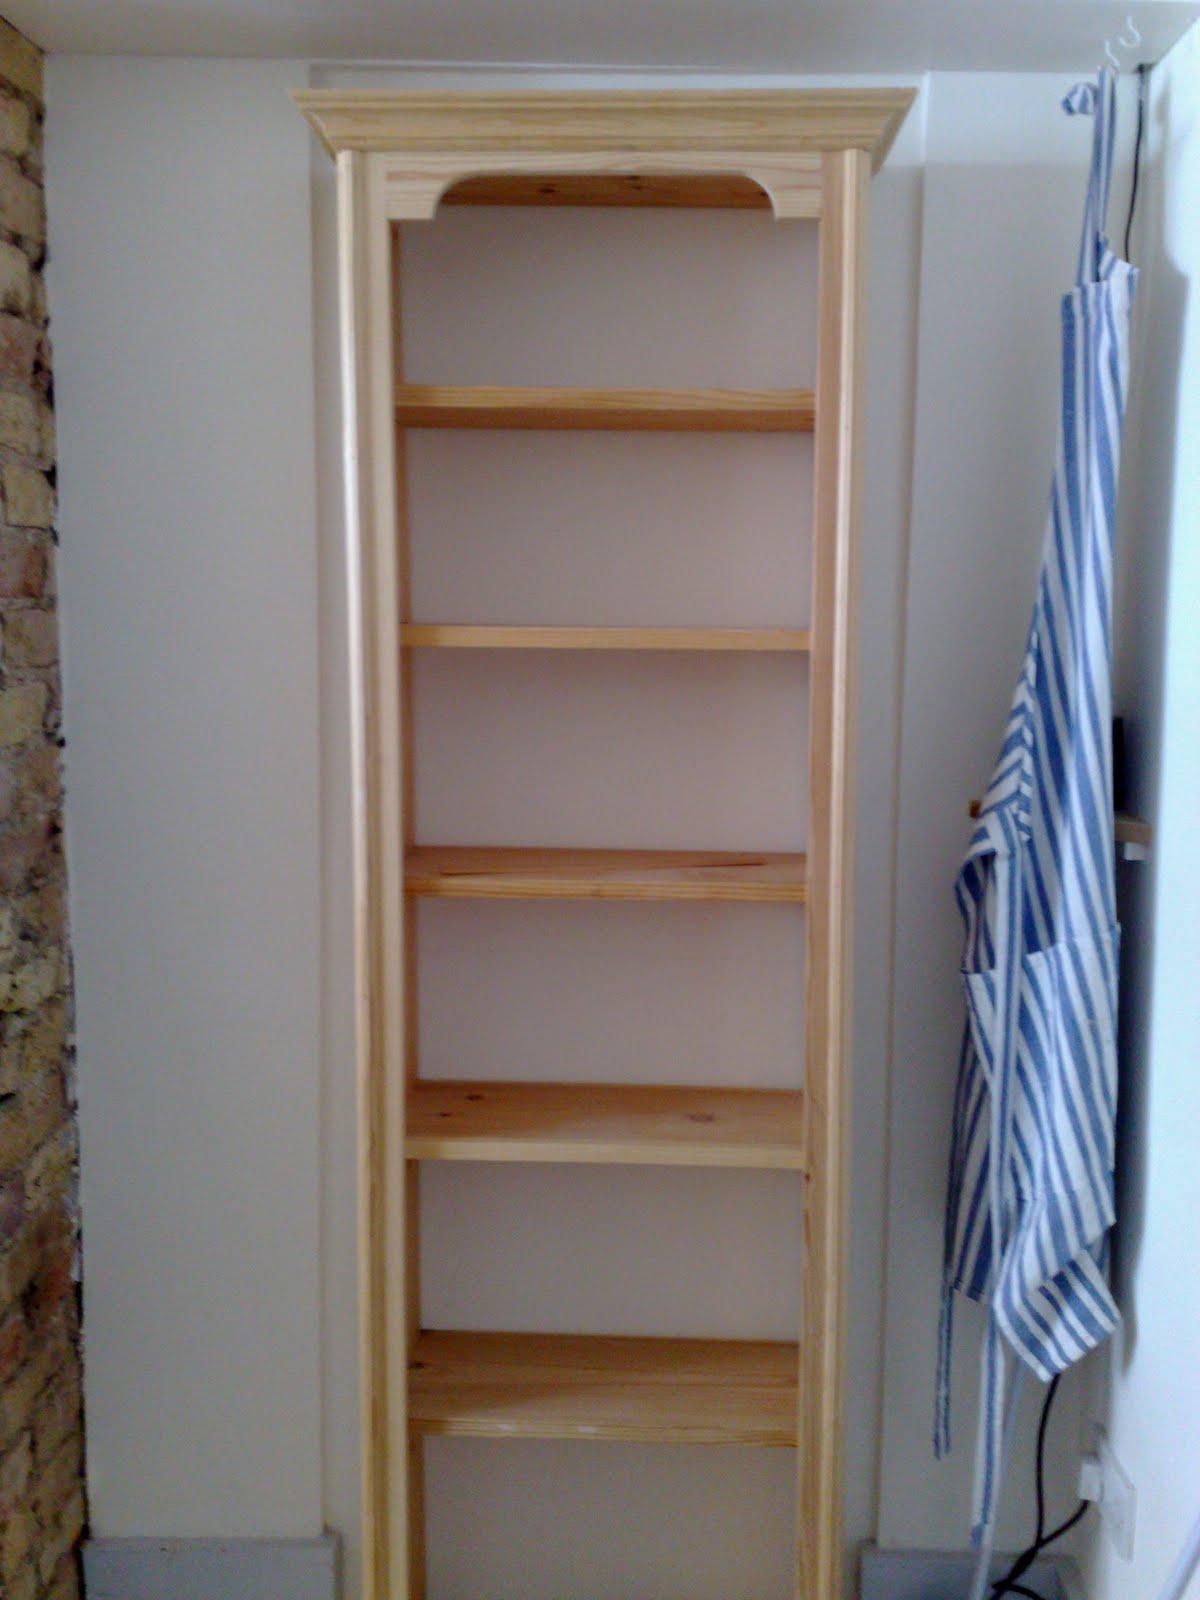 ... Bell Cabinetmaker Bespoke kitchens London: Free-standing bookcases